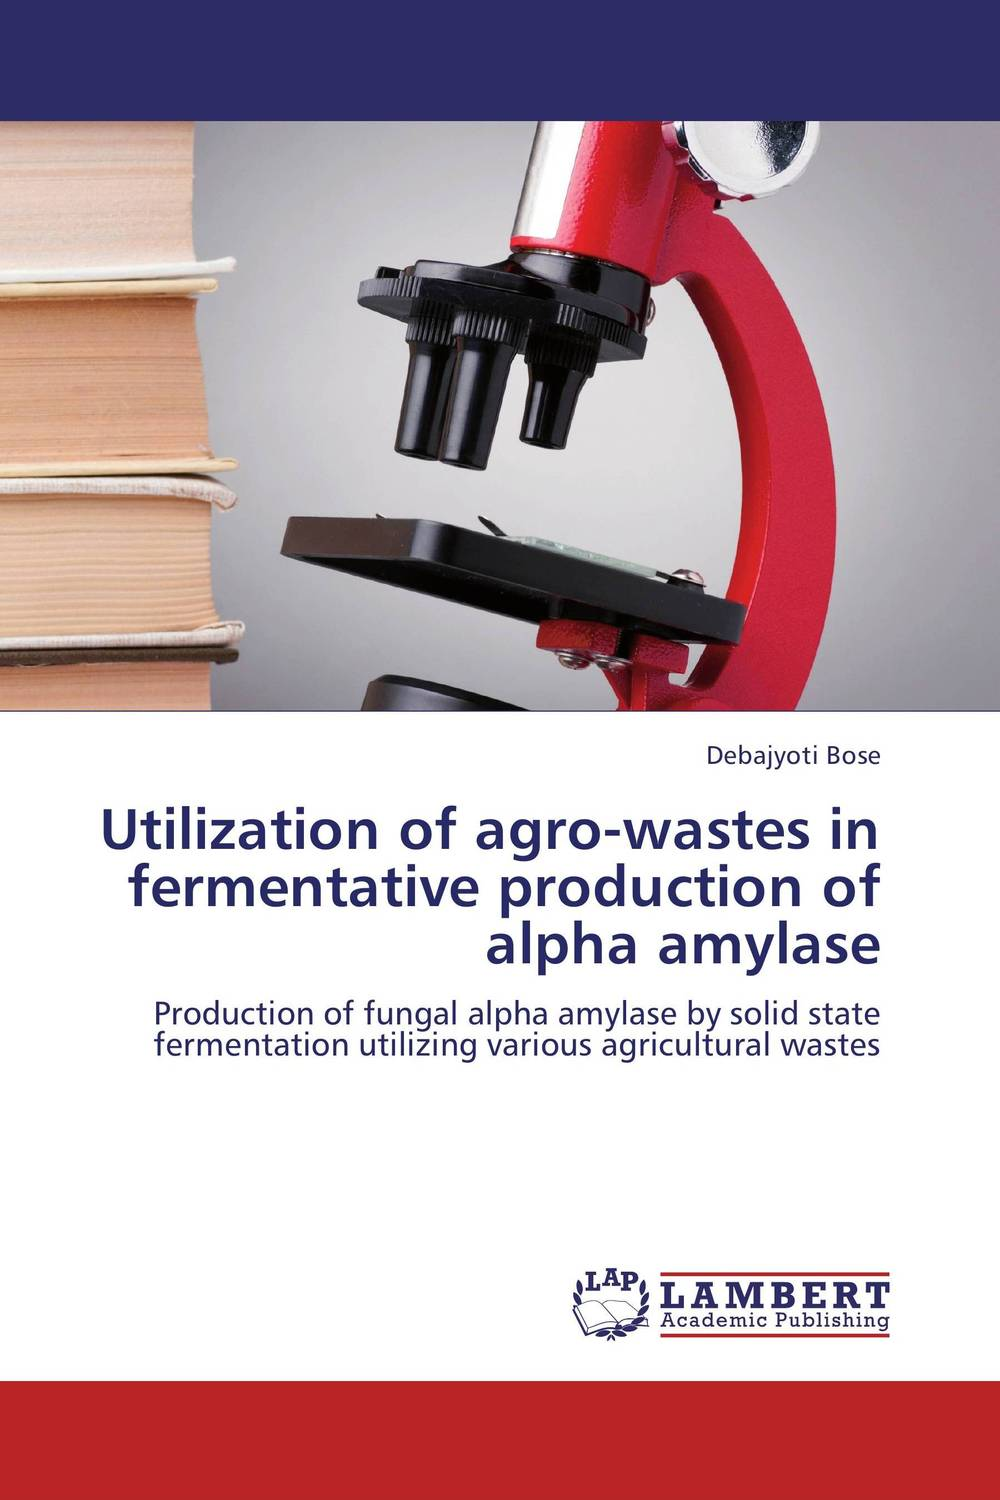 Utilization of agro-wastes in fermentative production of alpha amylase utilization of palm oil mill wastes